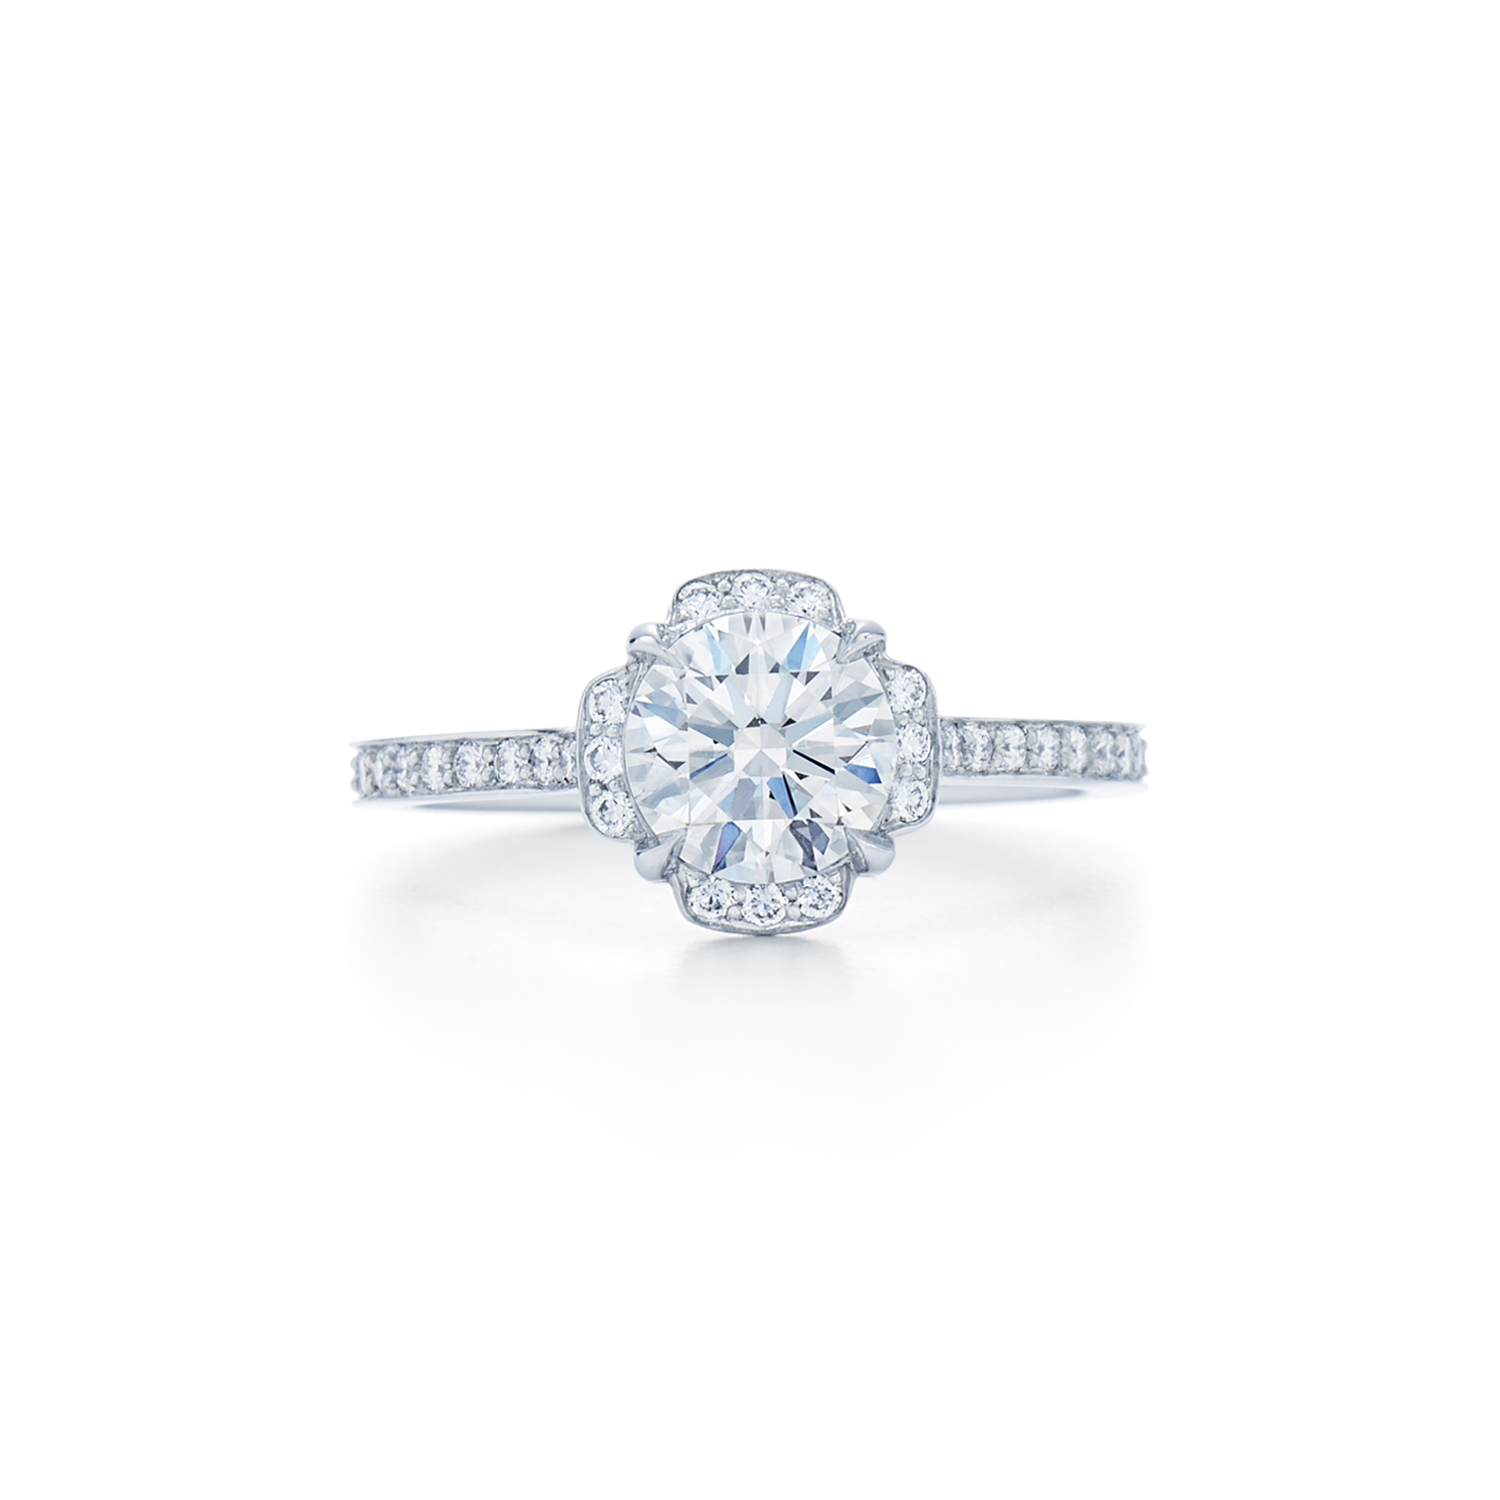 style platinum pave set oval engagement halo diamond solitaire jewelry product ring in kwiat plat the